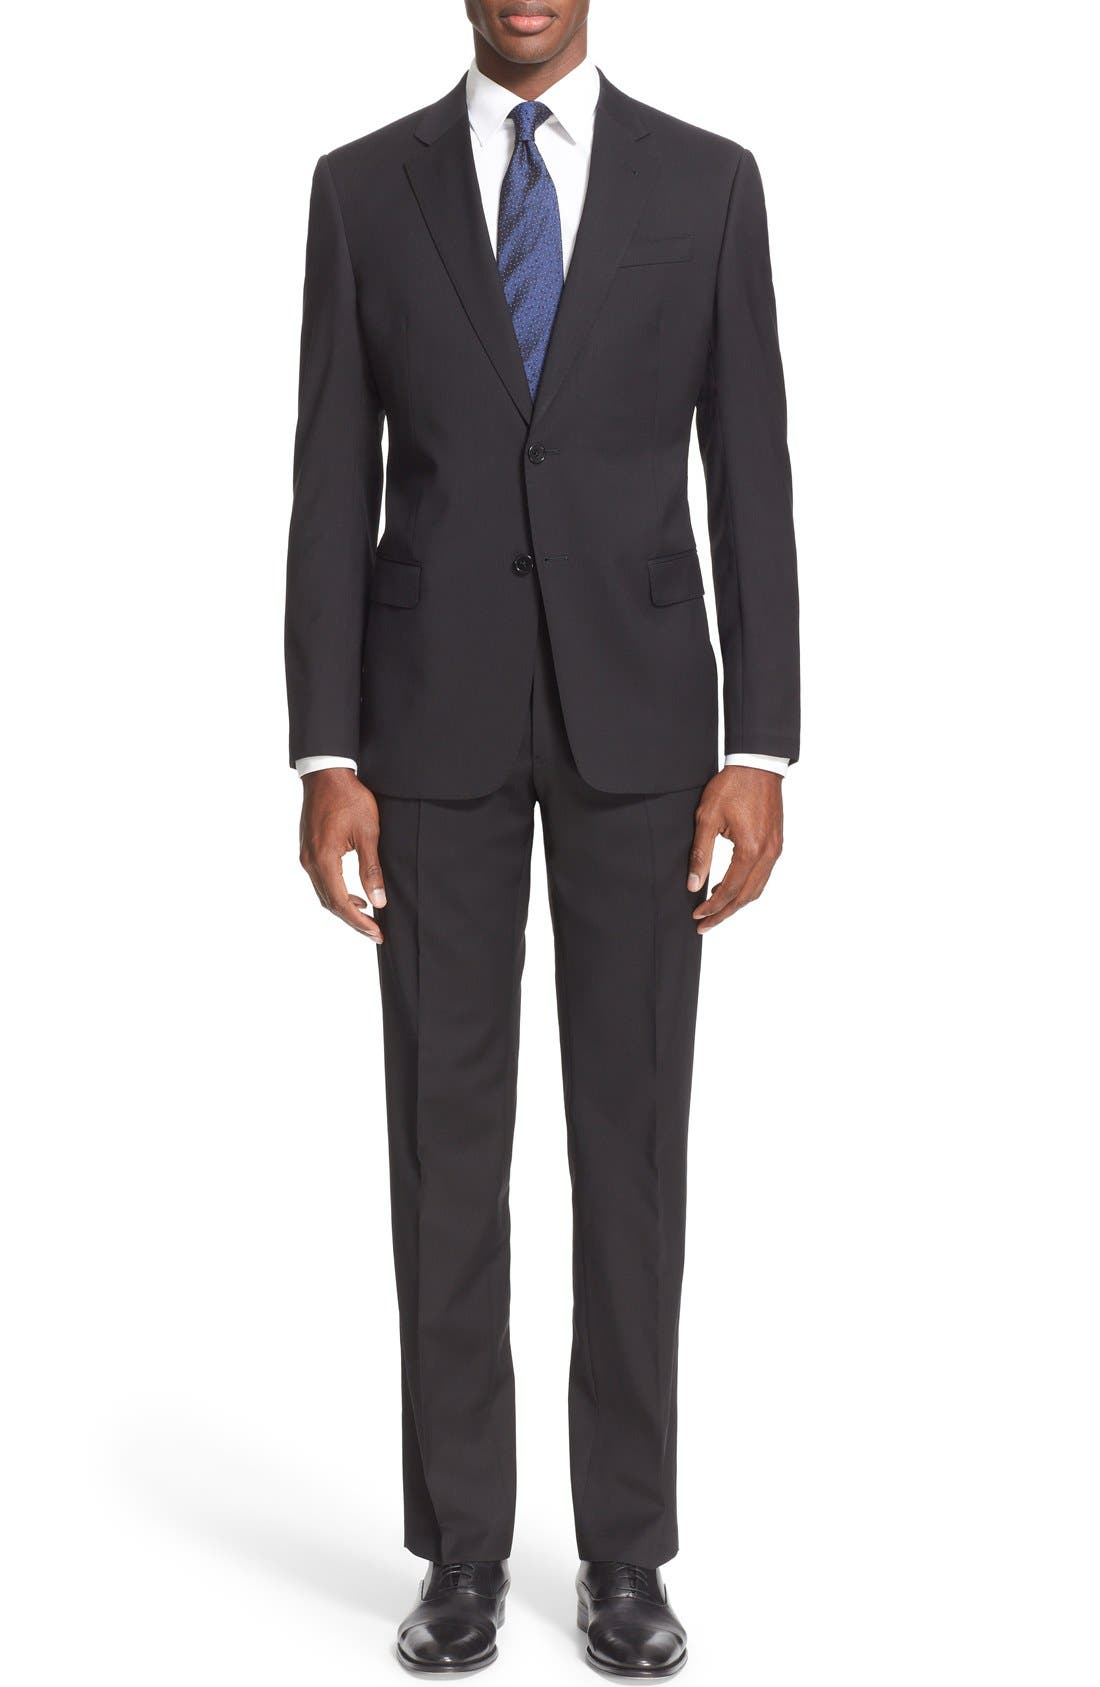 Alternate Image 1 Selected - Armani Collezioni G-Line Trim Fit Solid Wool Suit